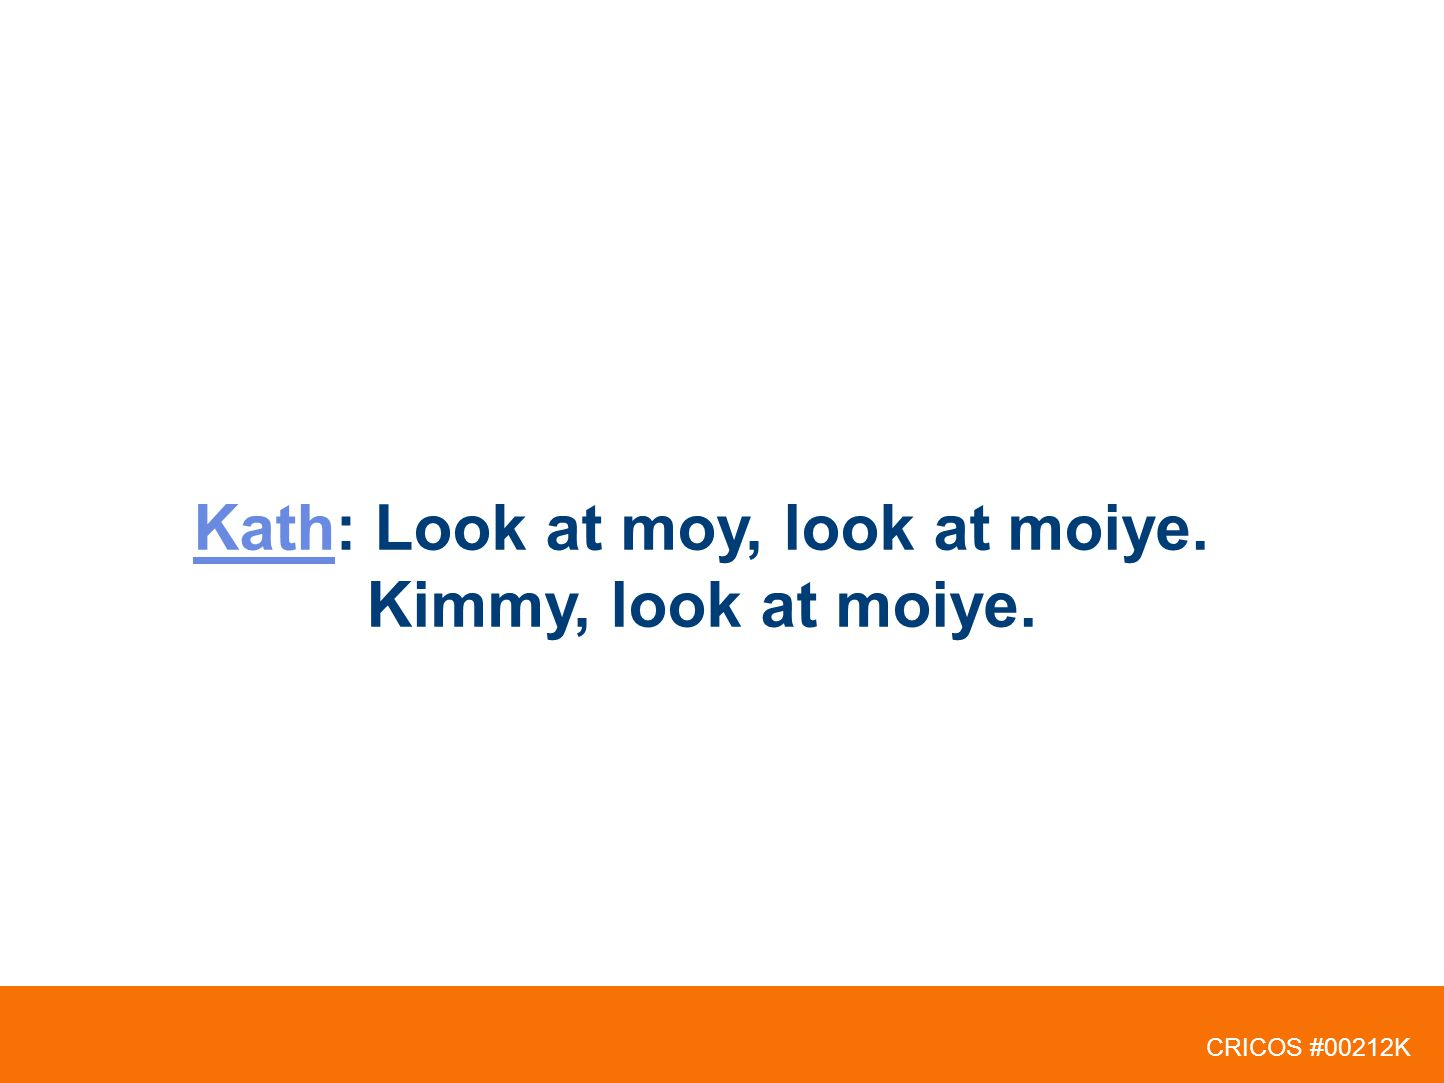 CRICOS #00212K KathKath: Look at moy, look at moiye. Kimmy, look at moiye.